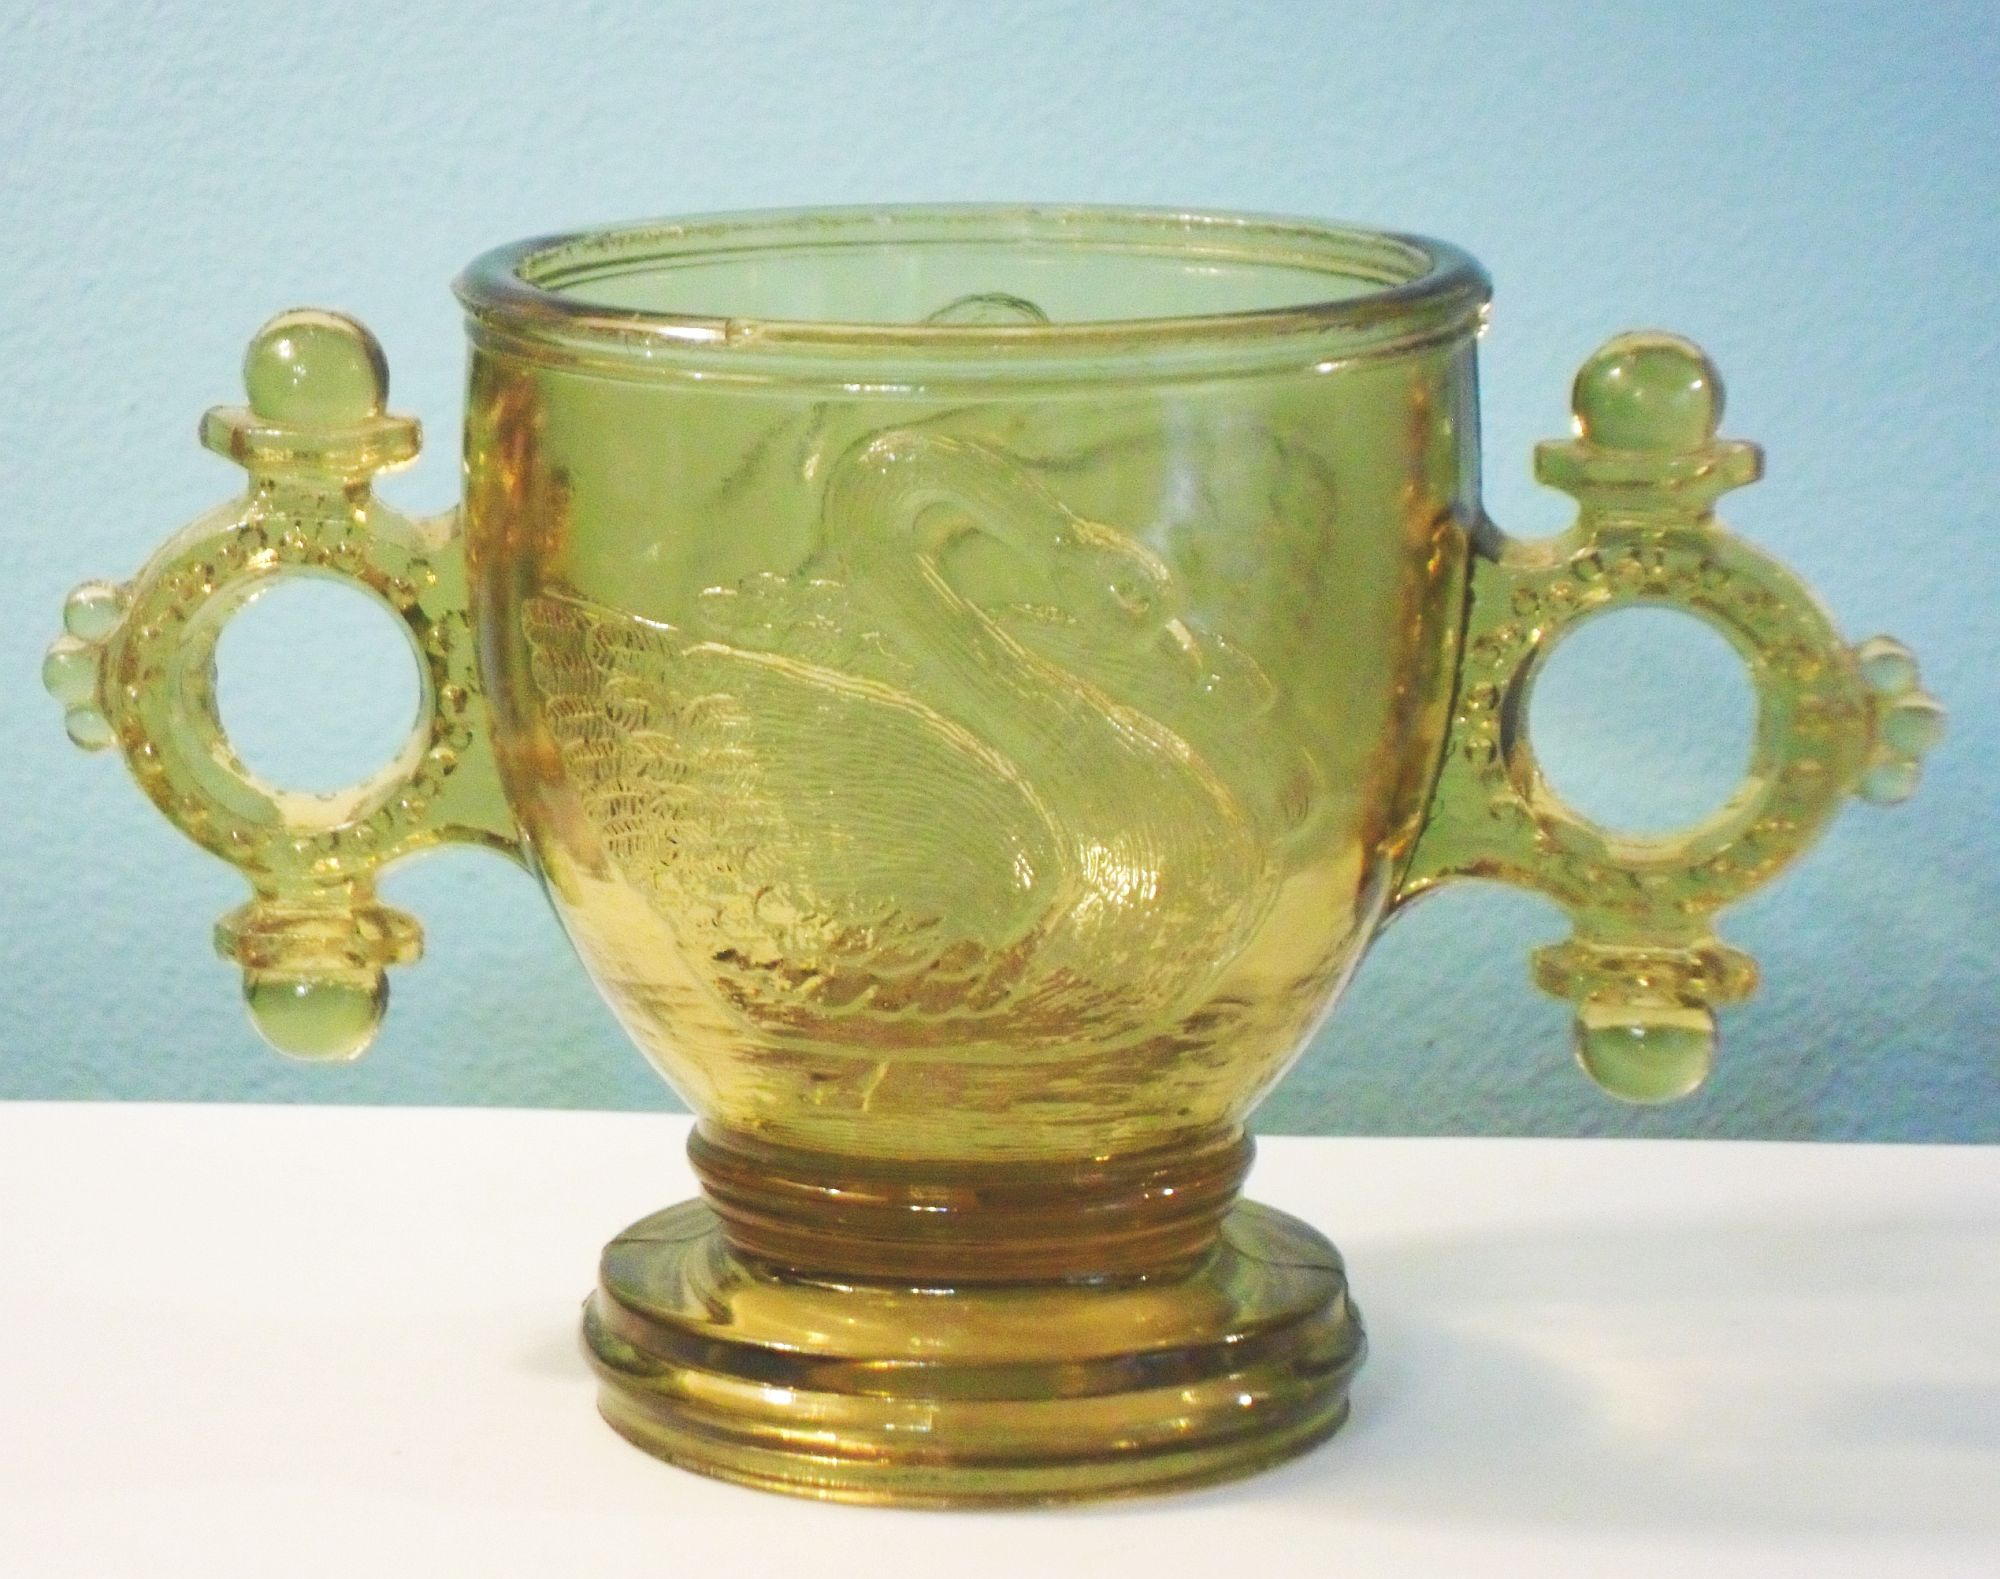 Atterbury glass company pittsburgh pennsylvania swan with double ring handles mustard or sugar bowl floridaeventfo Choice Image